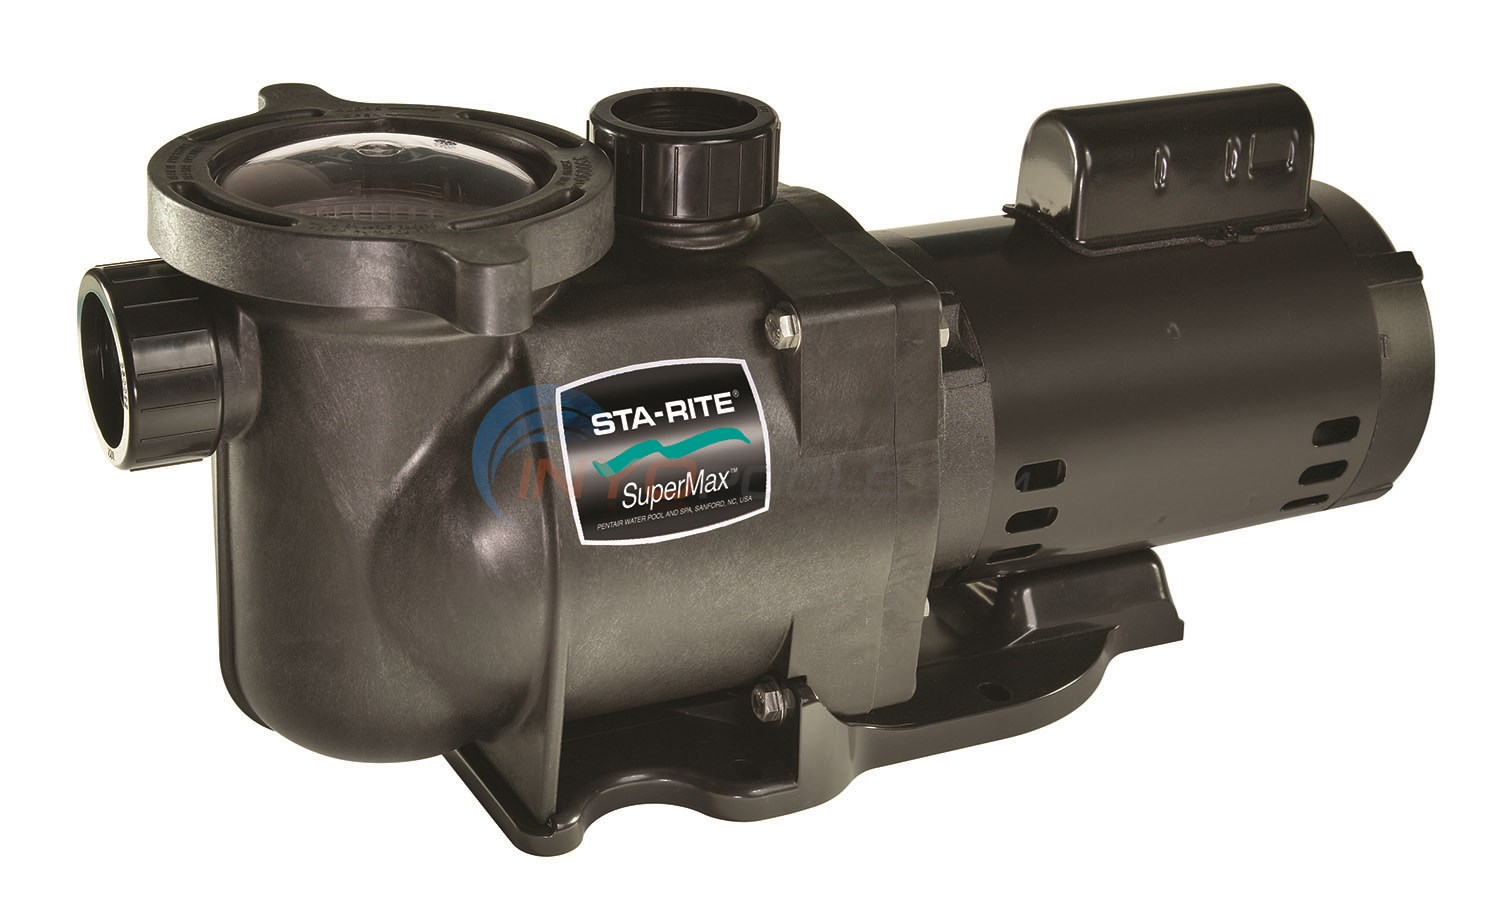 Sta Rite SuperMax?format=jpg&scale=both&anchor=middlecenter&autorotate=true&mode=pad&width=650&height=650 sta rite super max 2 hp pump phk2ra6g104l inyopools com supermax lg-1440 wiring diagram at mifinder.co